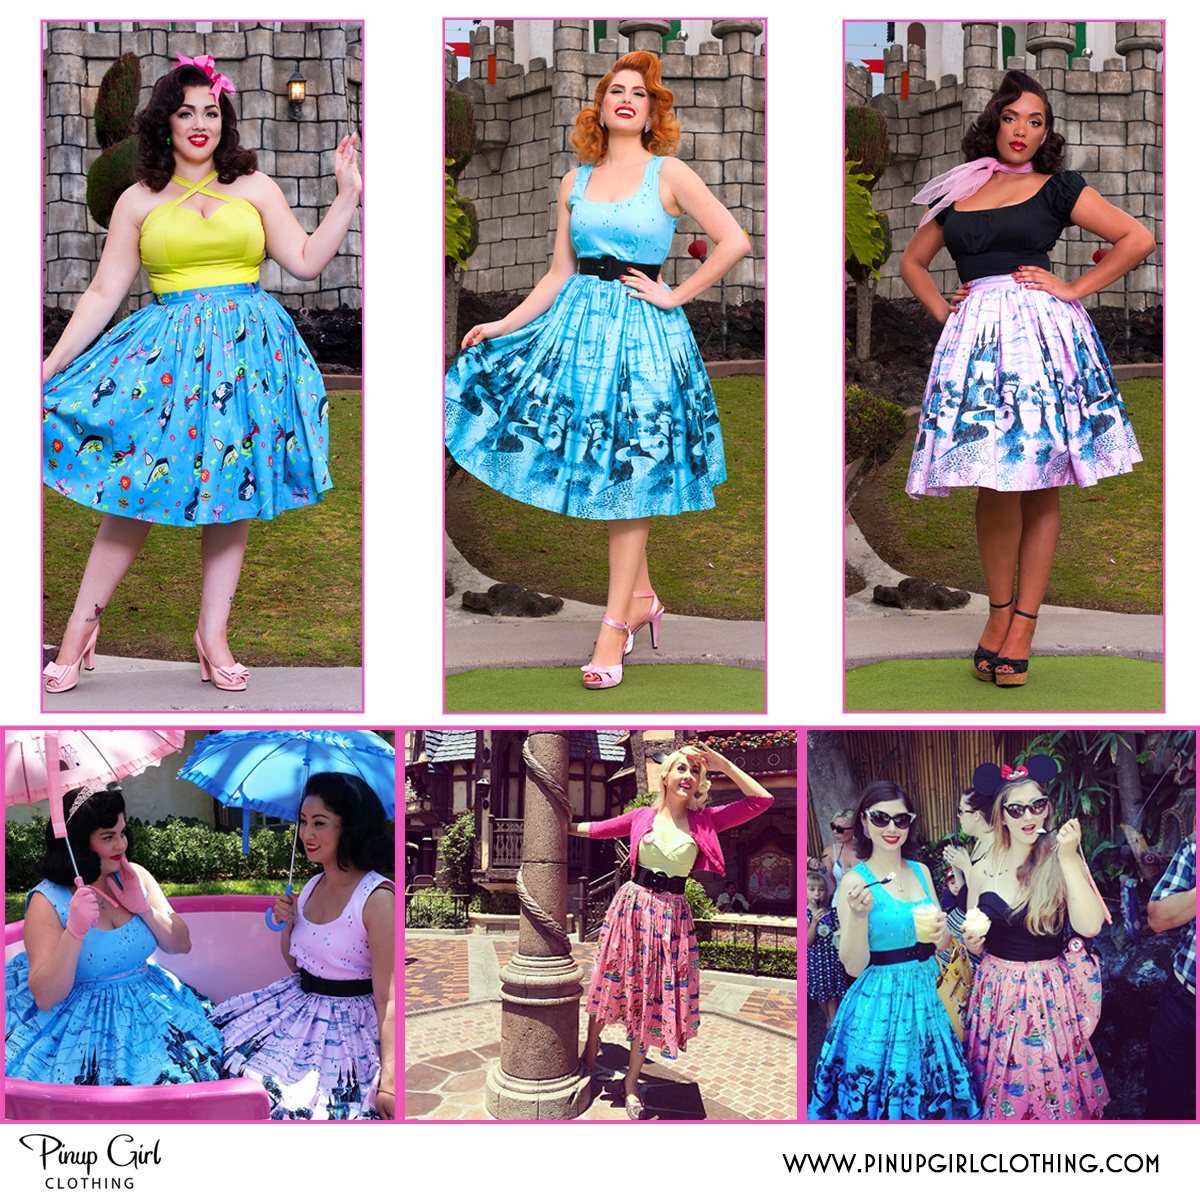 All About Abbie Pin Up Girl Clothing: Pinup Girl Clothing Hosts The Happiest Gathering On Earth